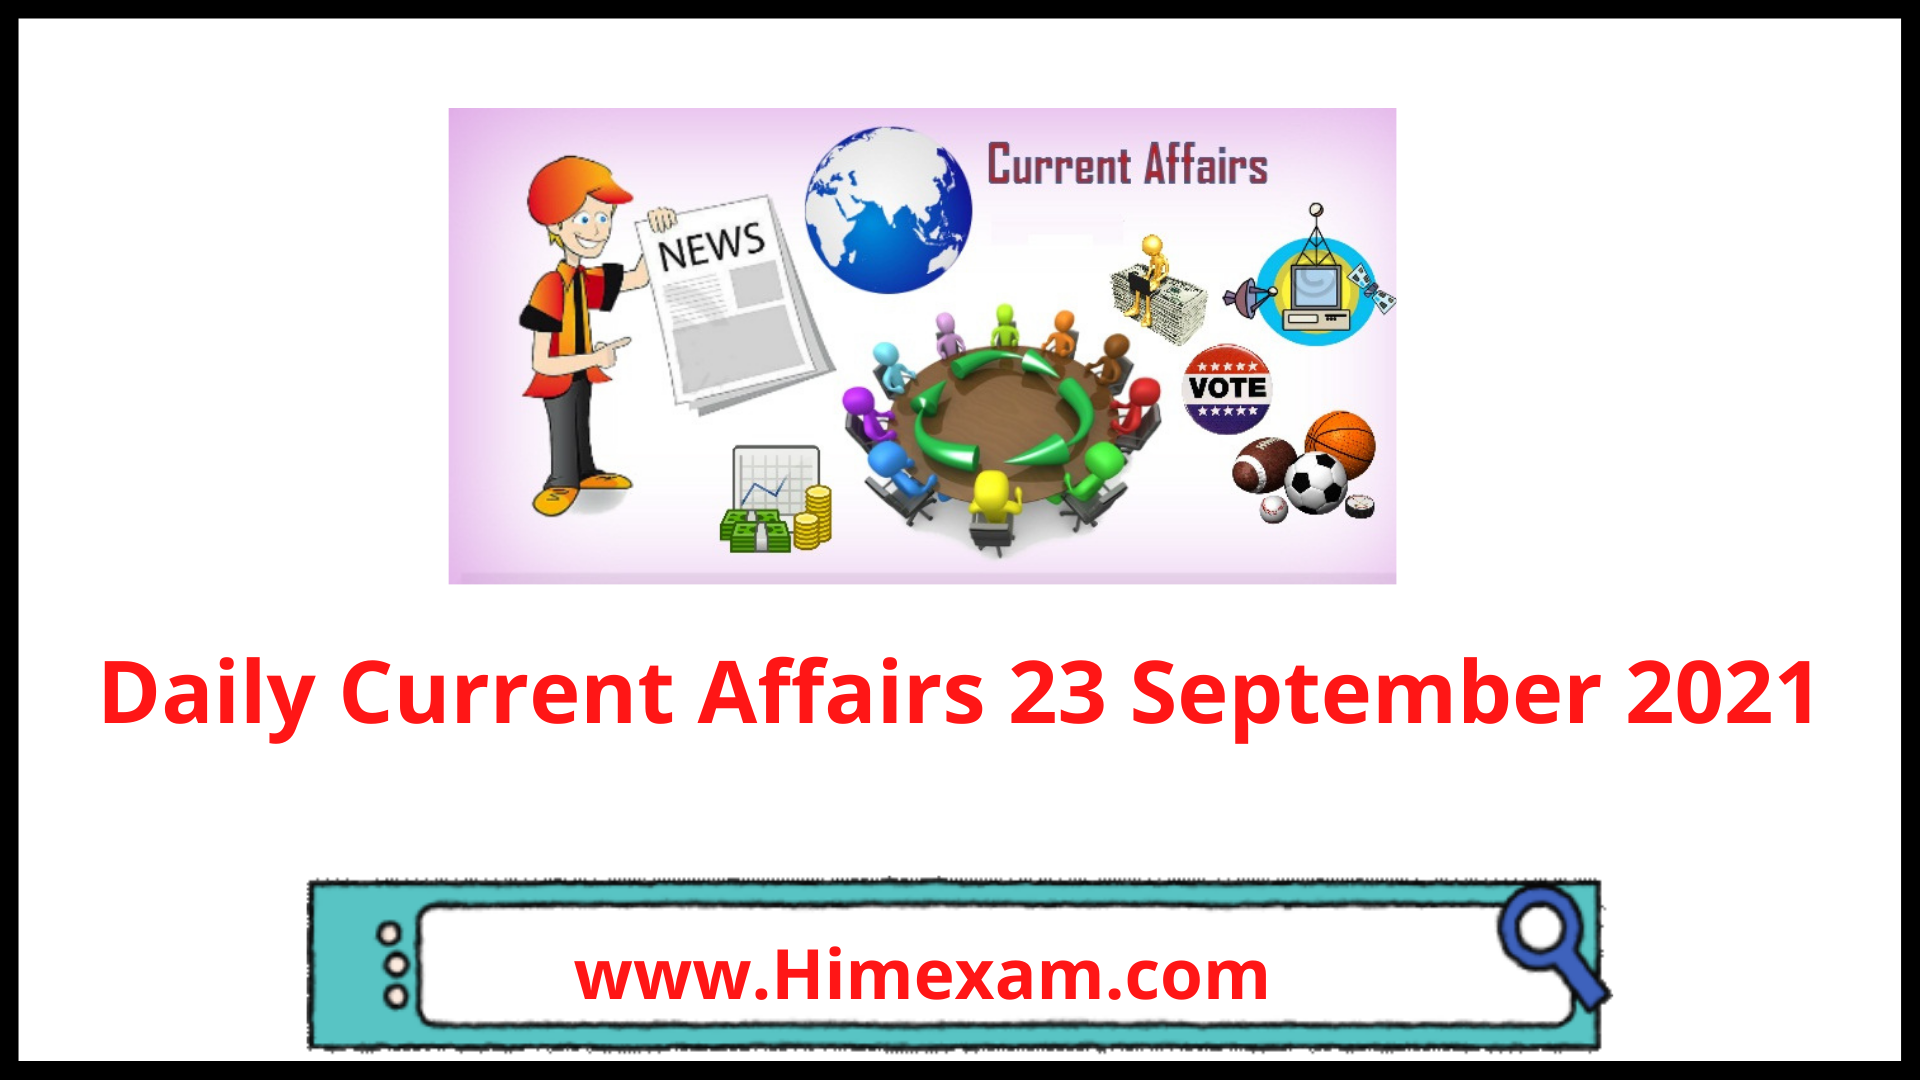 Daily Current Affairs 23 September 2021